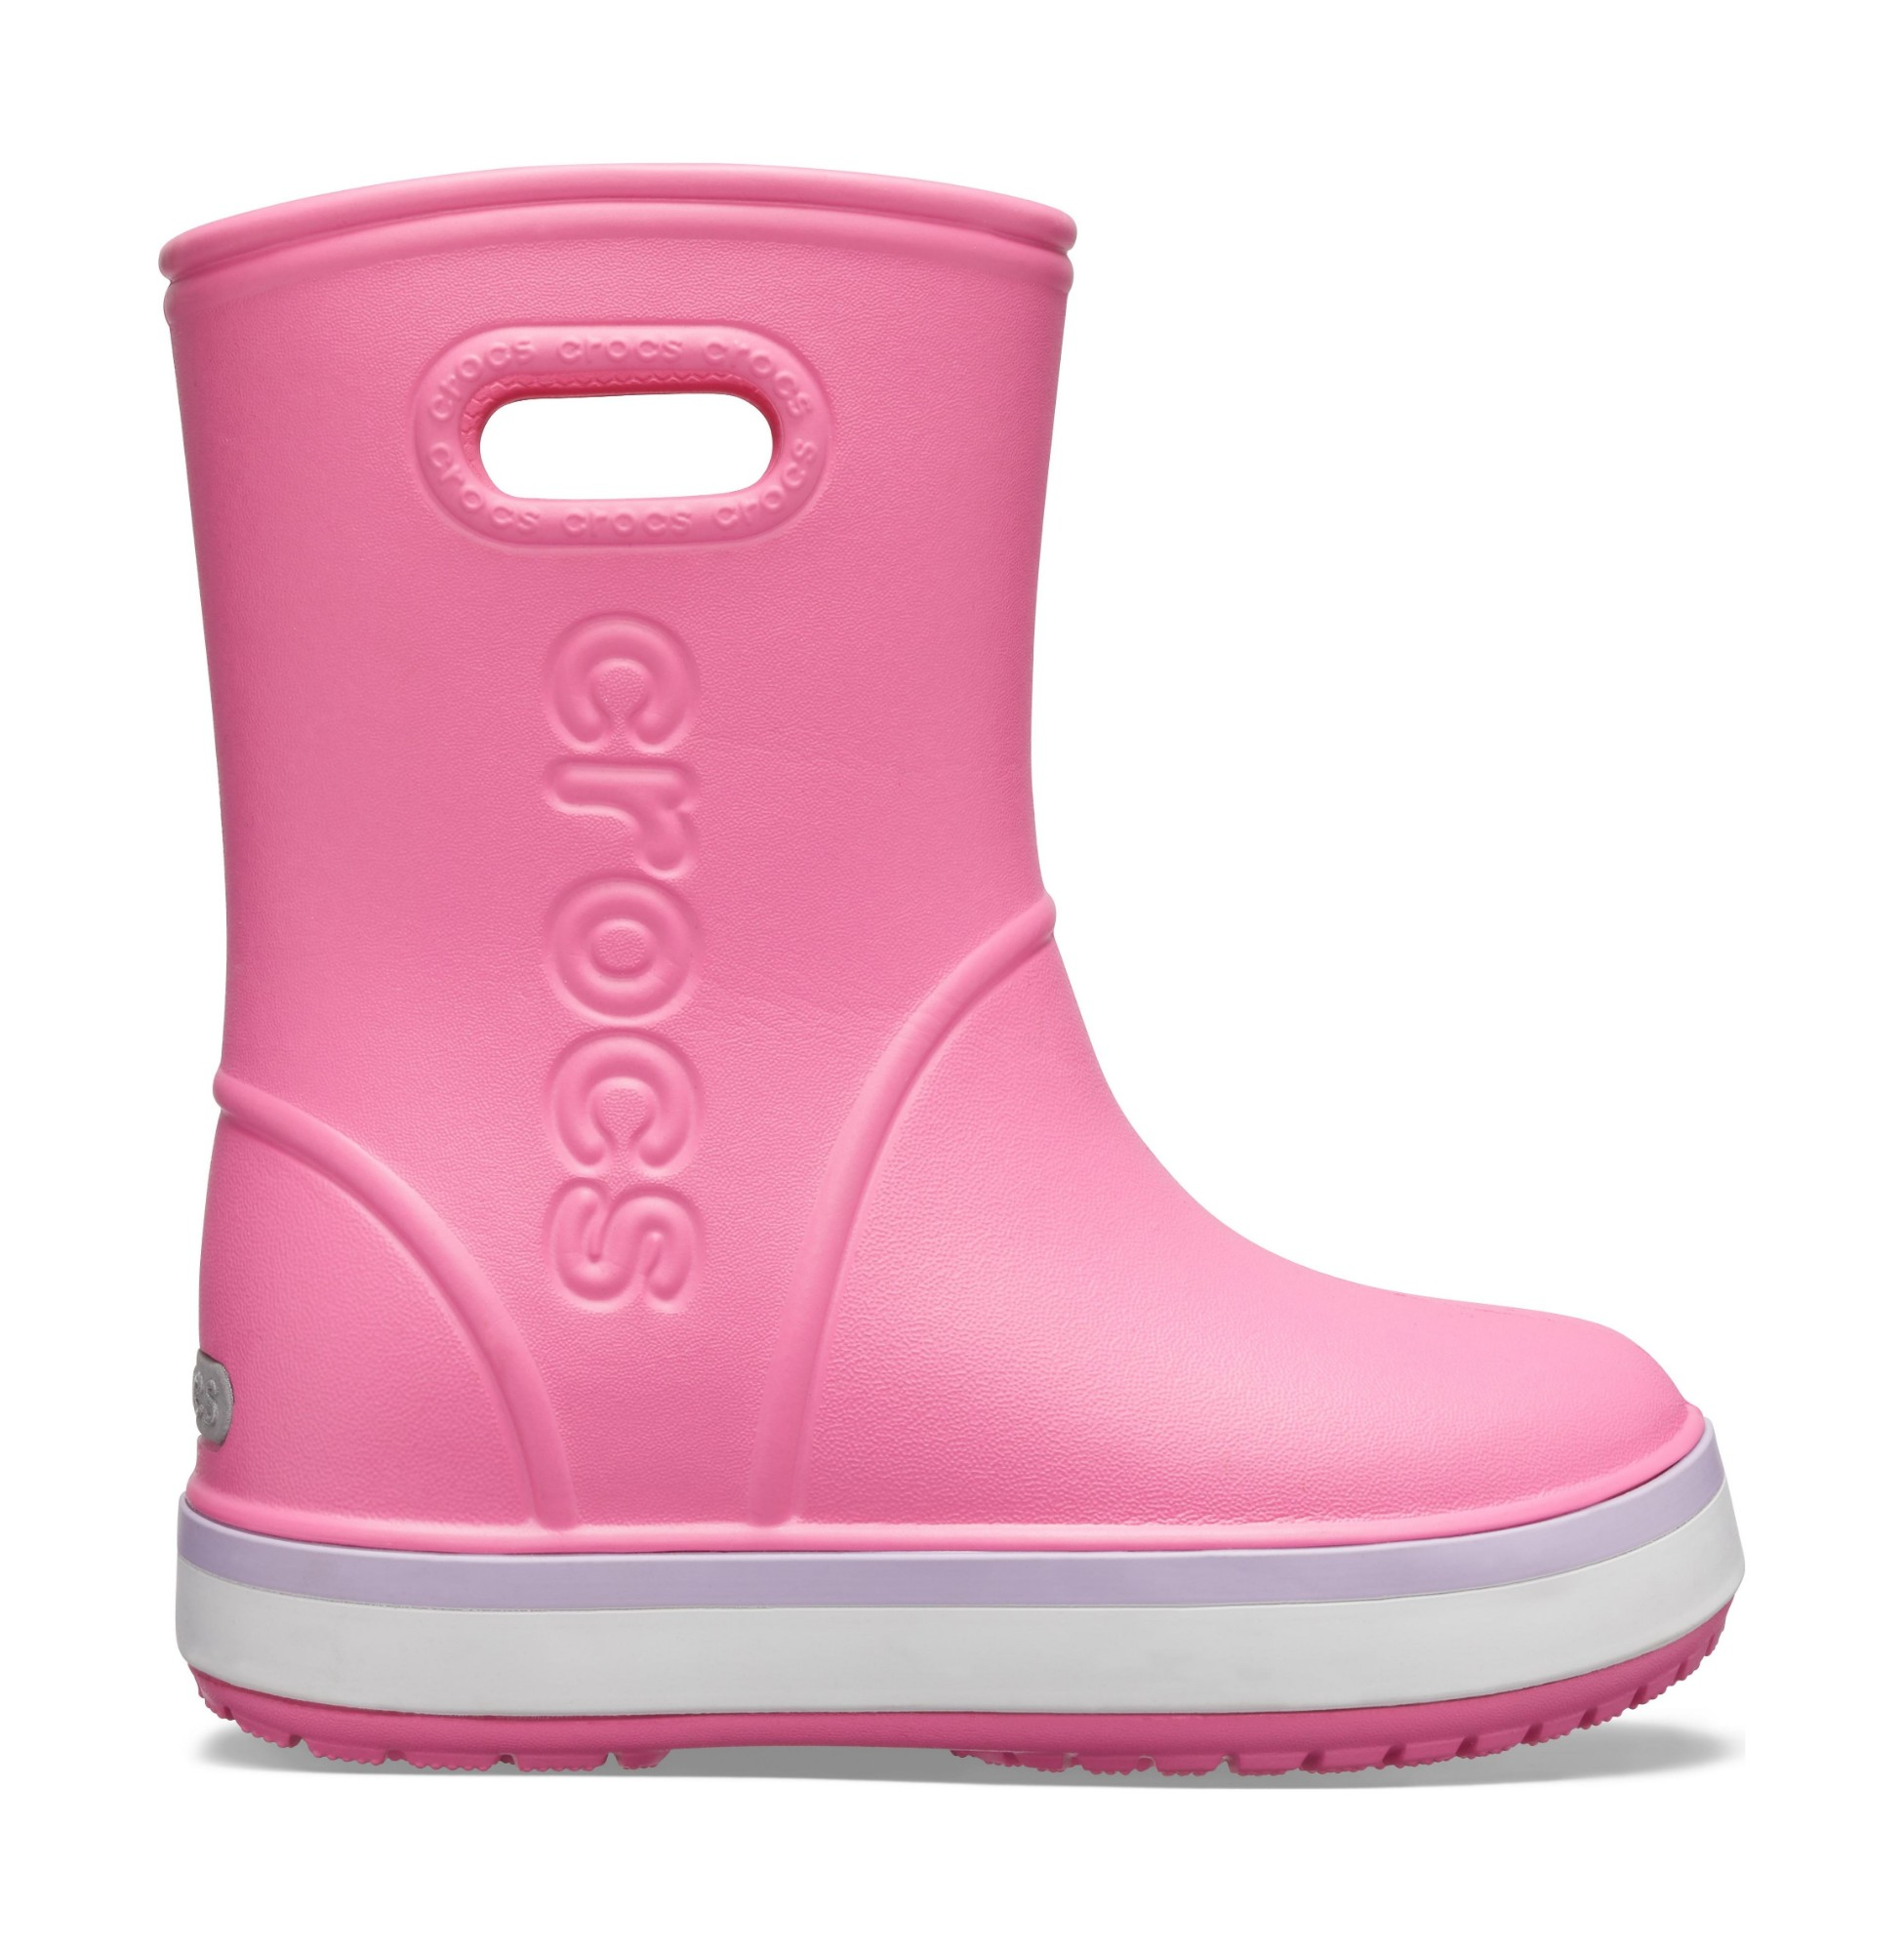 Crocs™ Crocband Rain Boot Kid's Pink Lemonade/Lavender 23